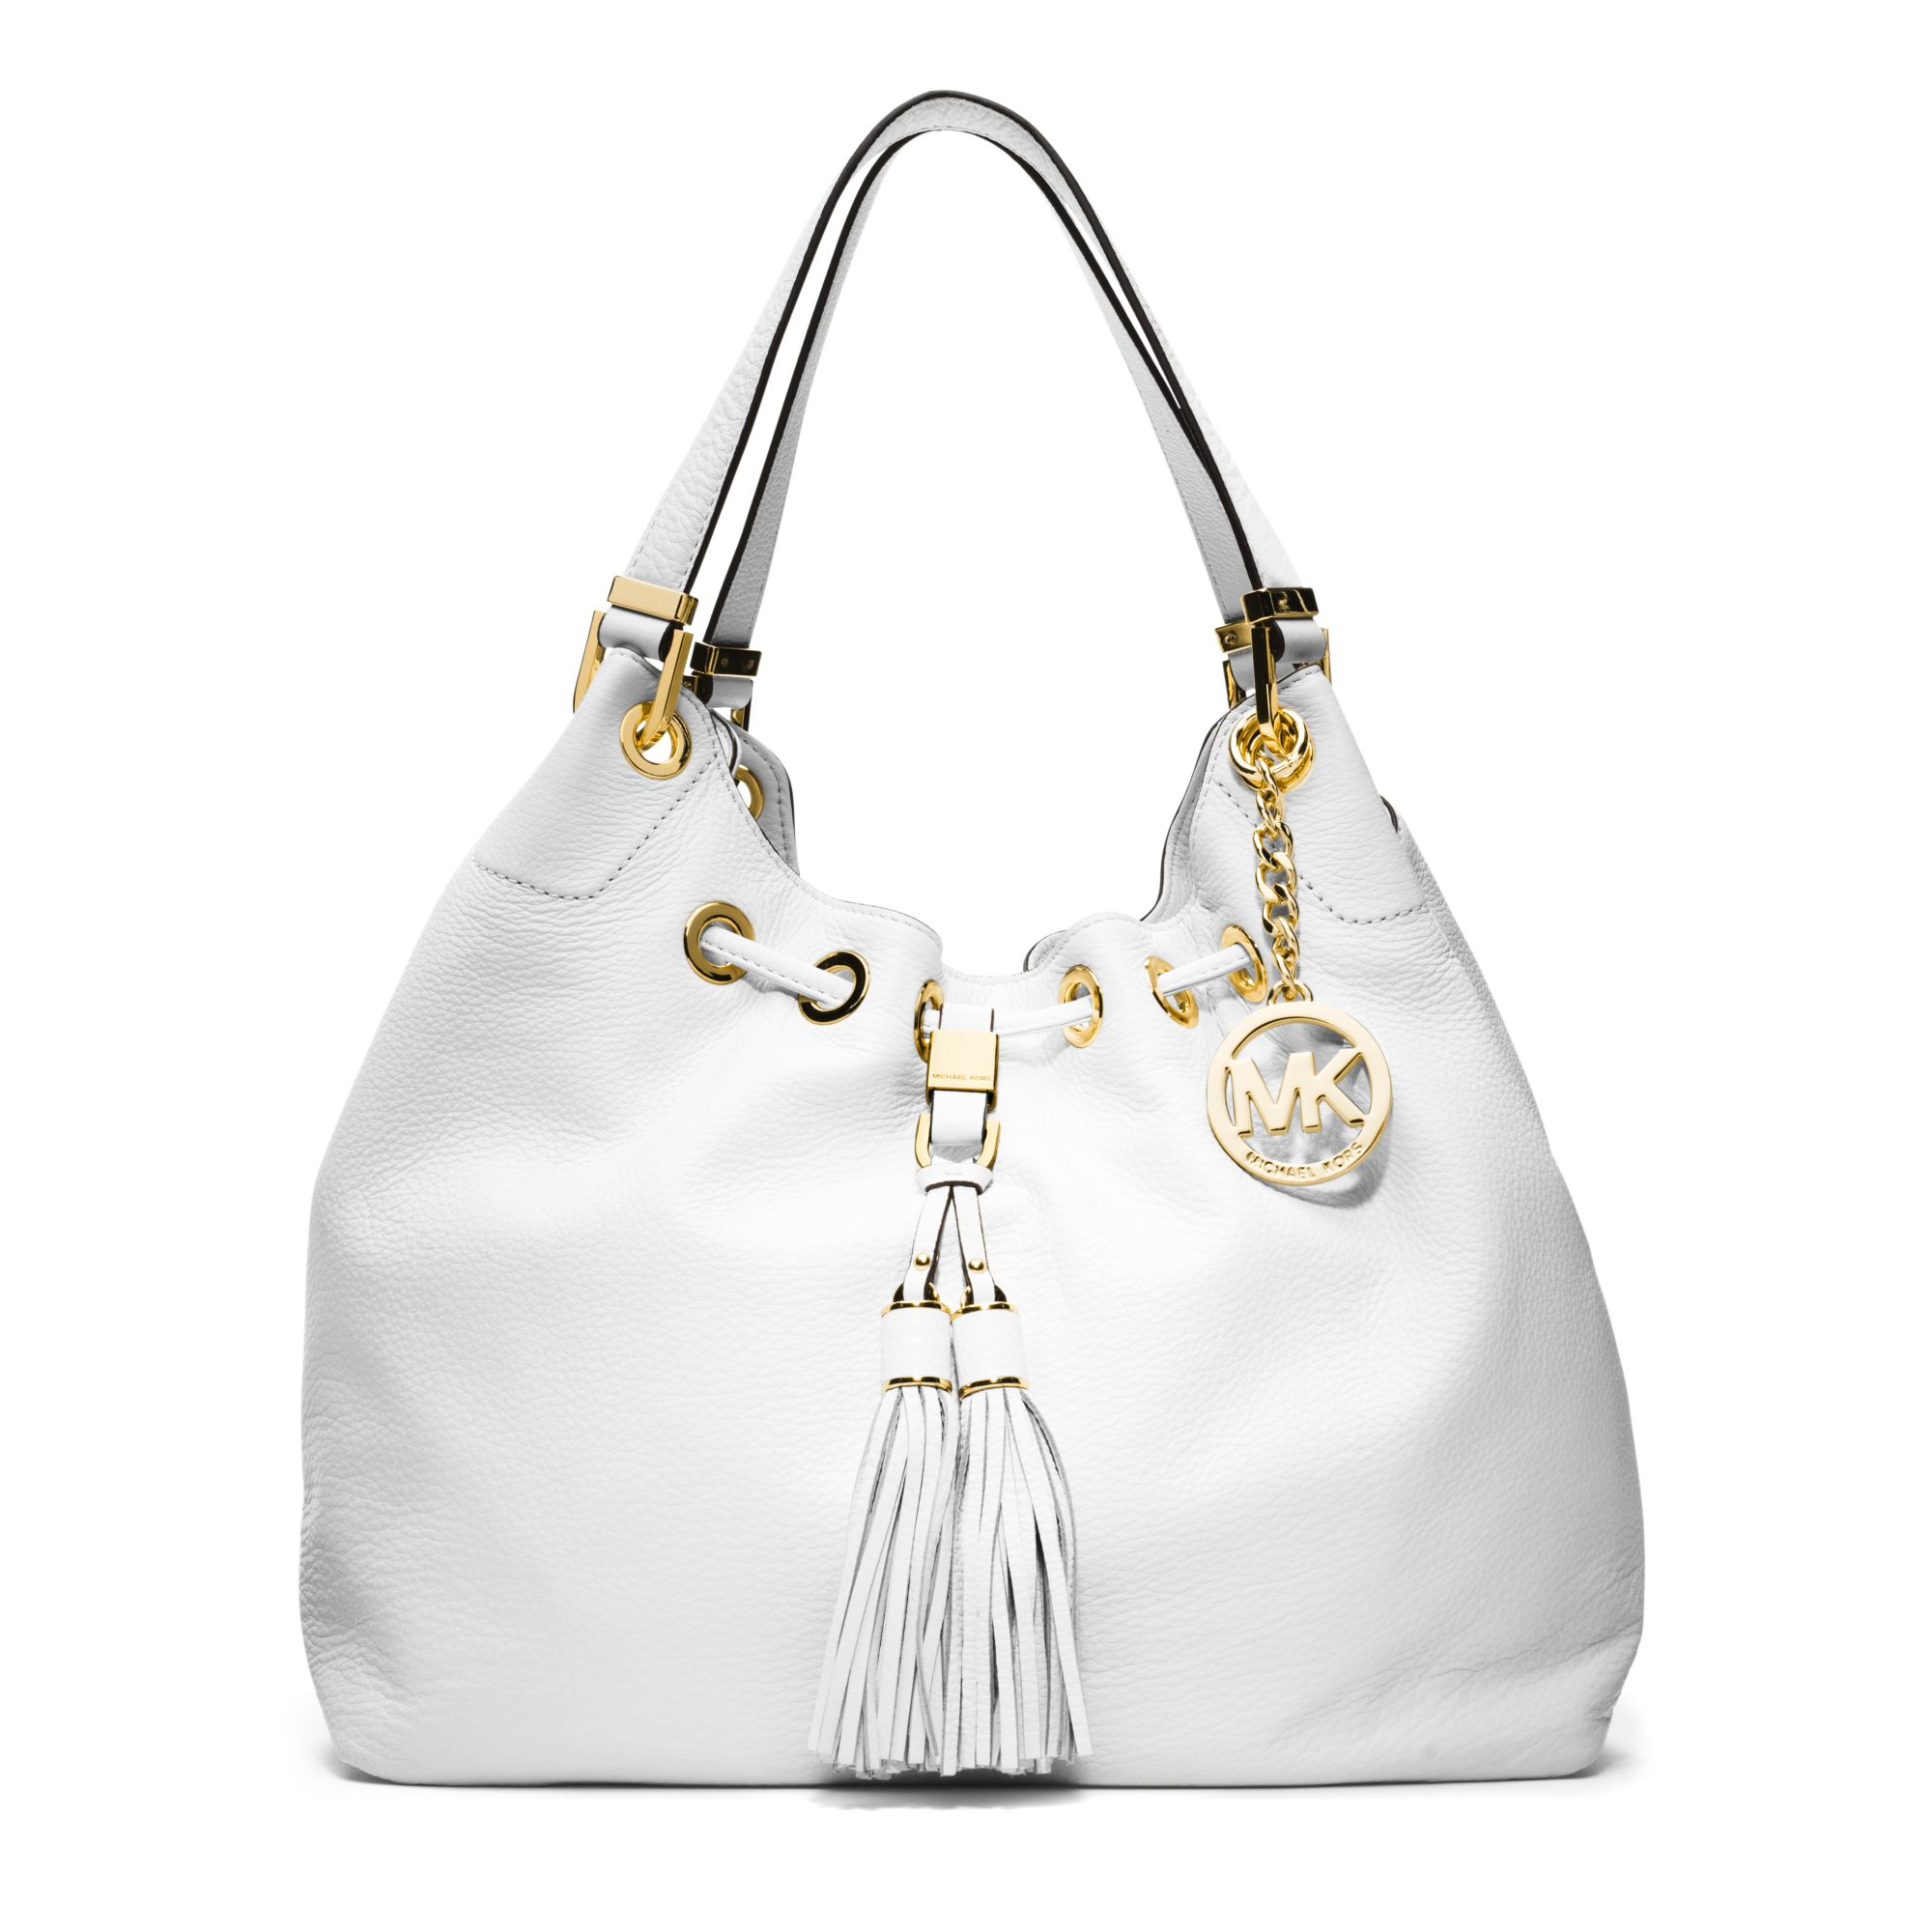 20a46cd06dde ... discount lyst michael kors camden large leather shoulder bag in white  4fb84 5cb77